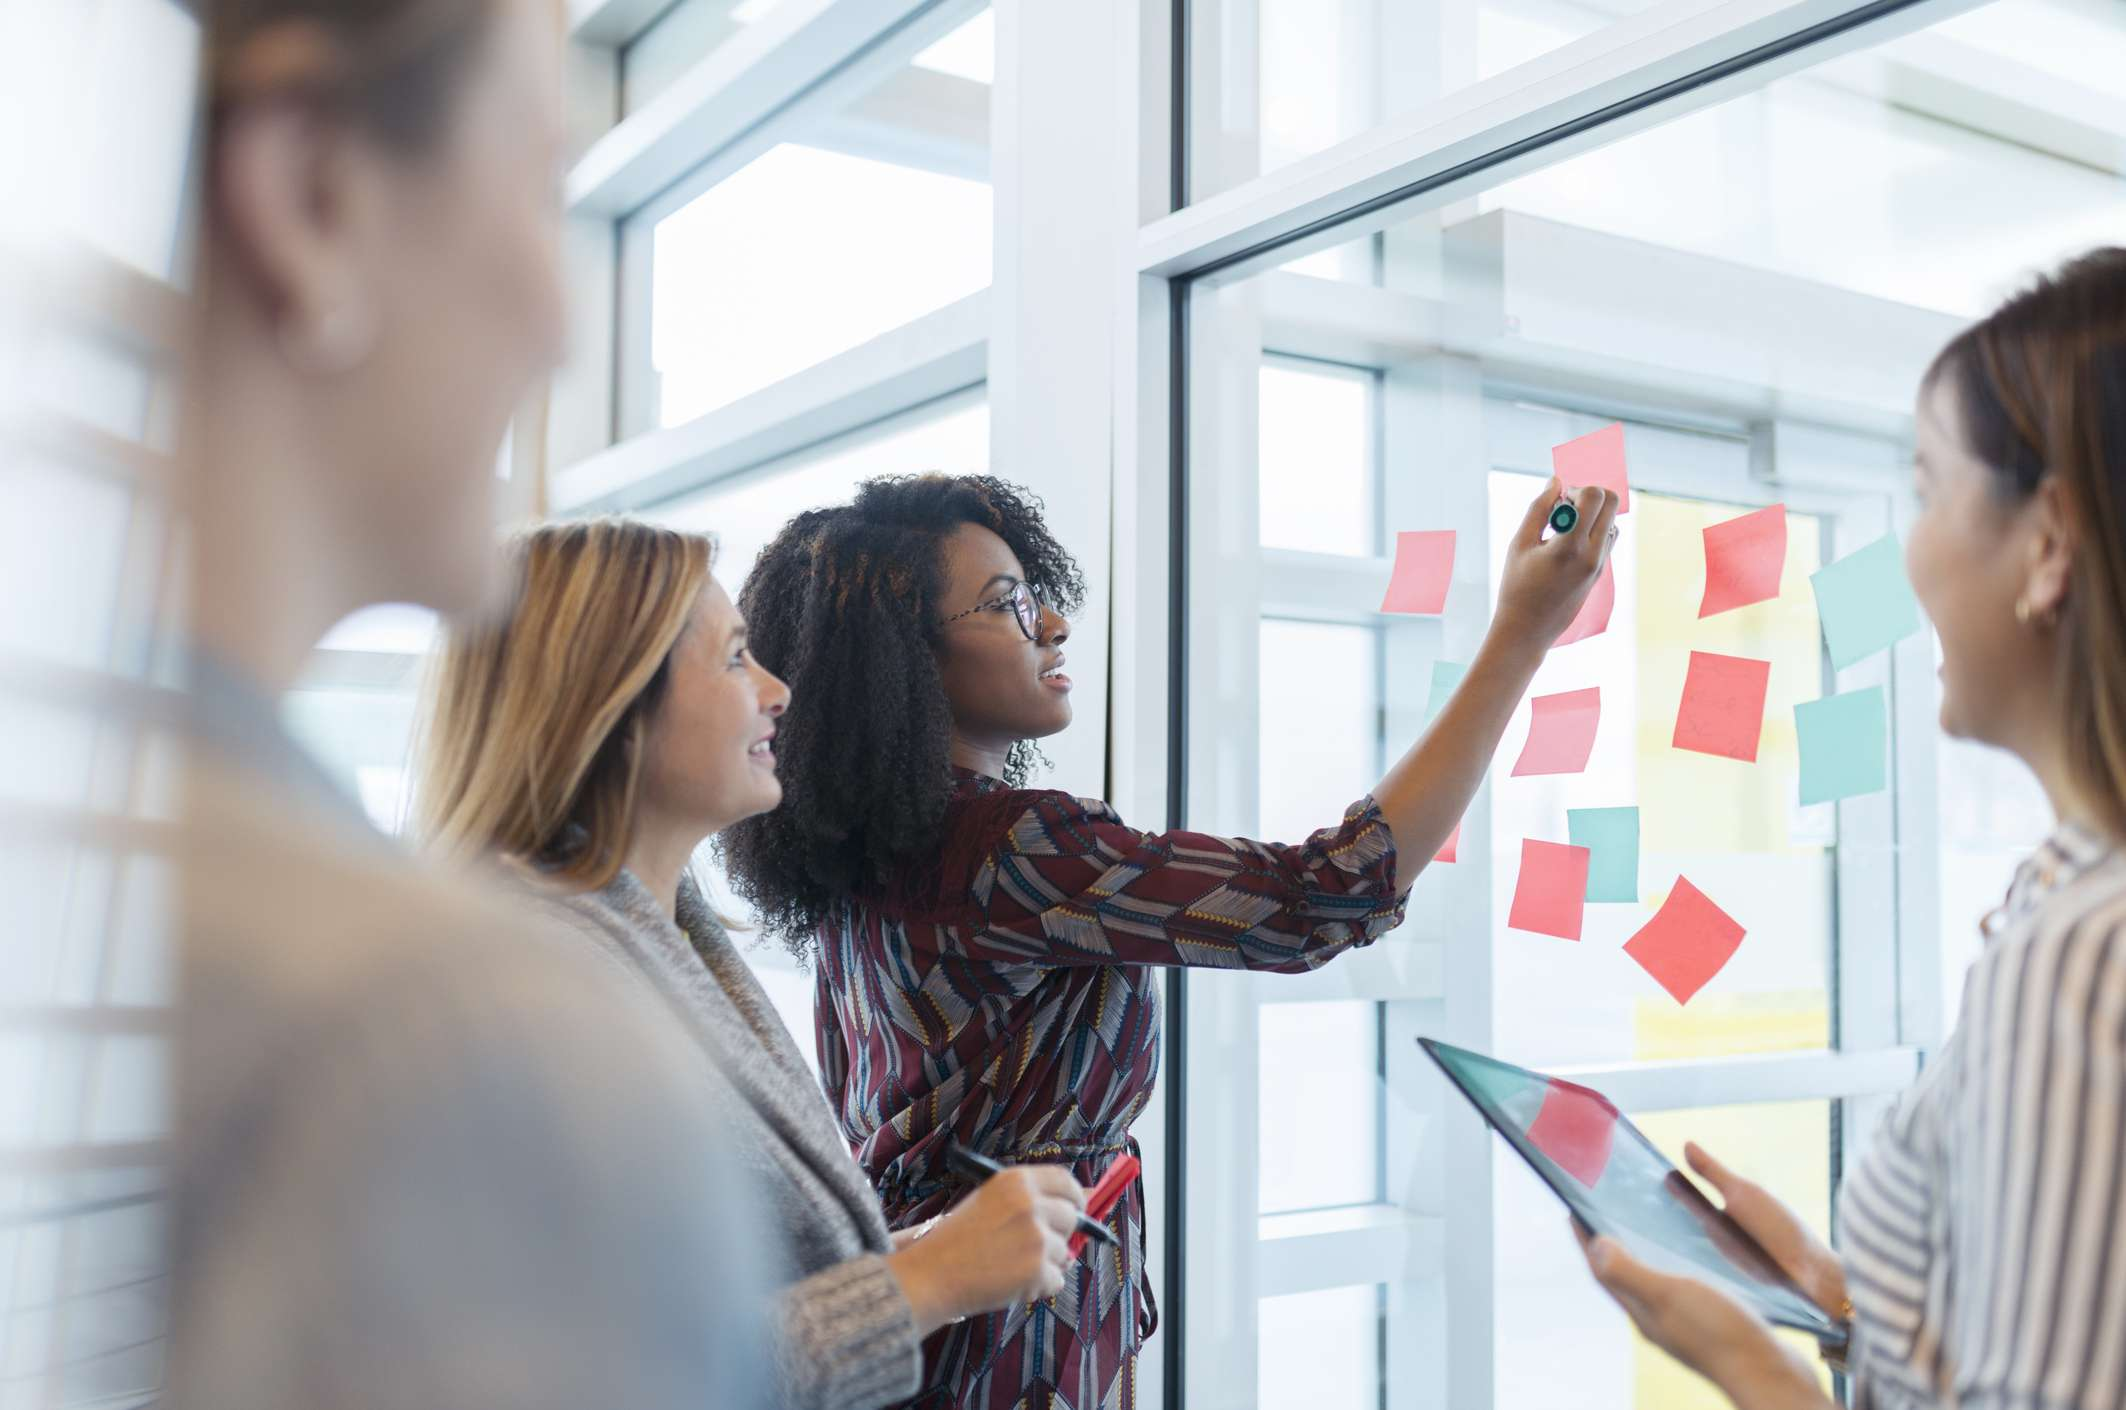 Woman making decisions in meeting